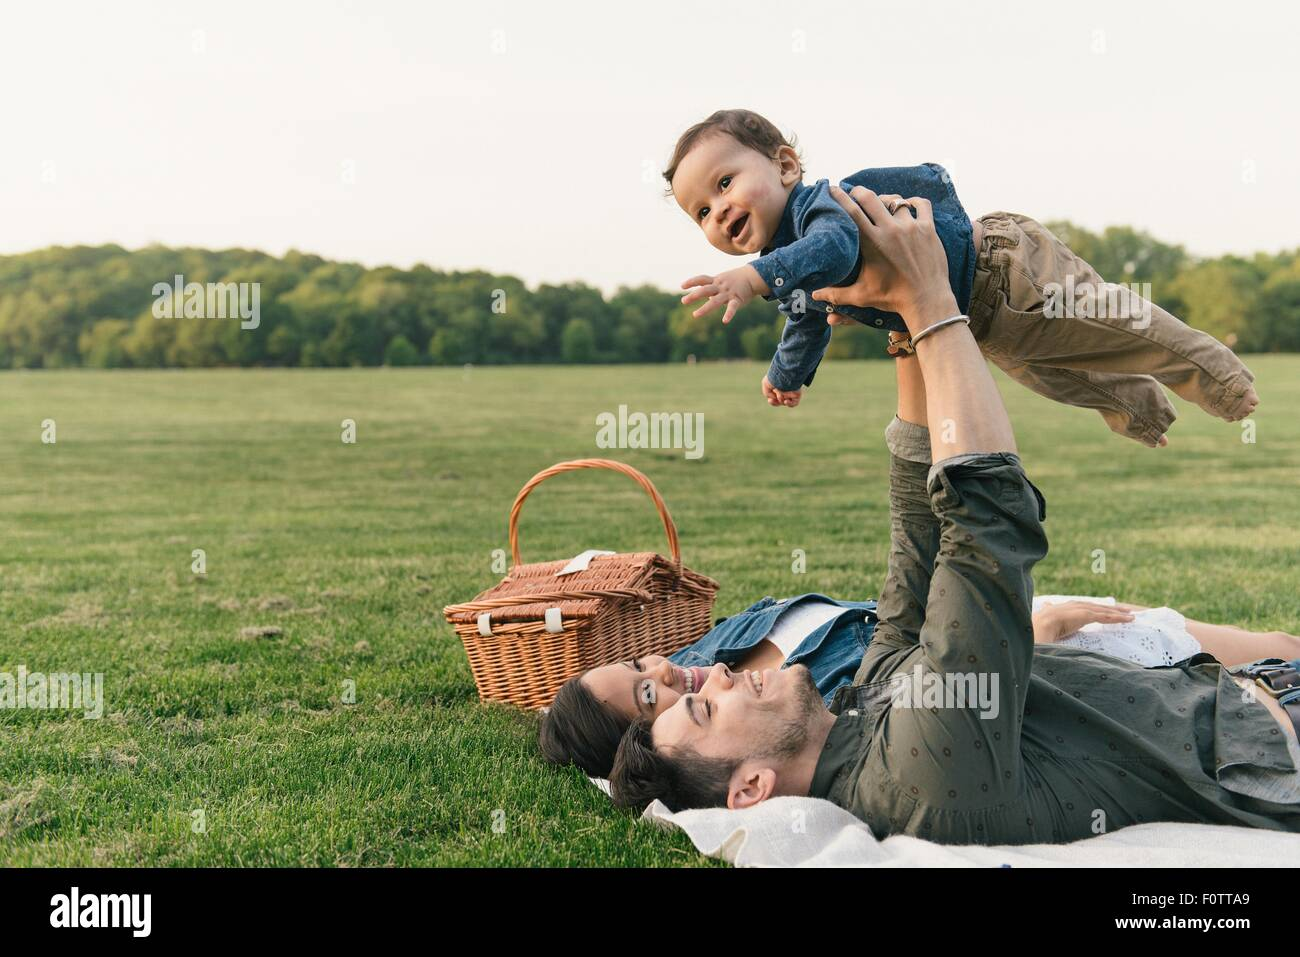 Mother and father laying on backs raising baby boy into the air - Stock Image